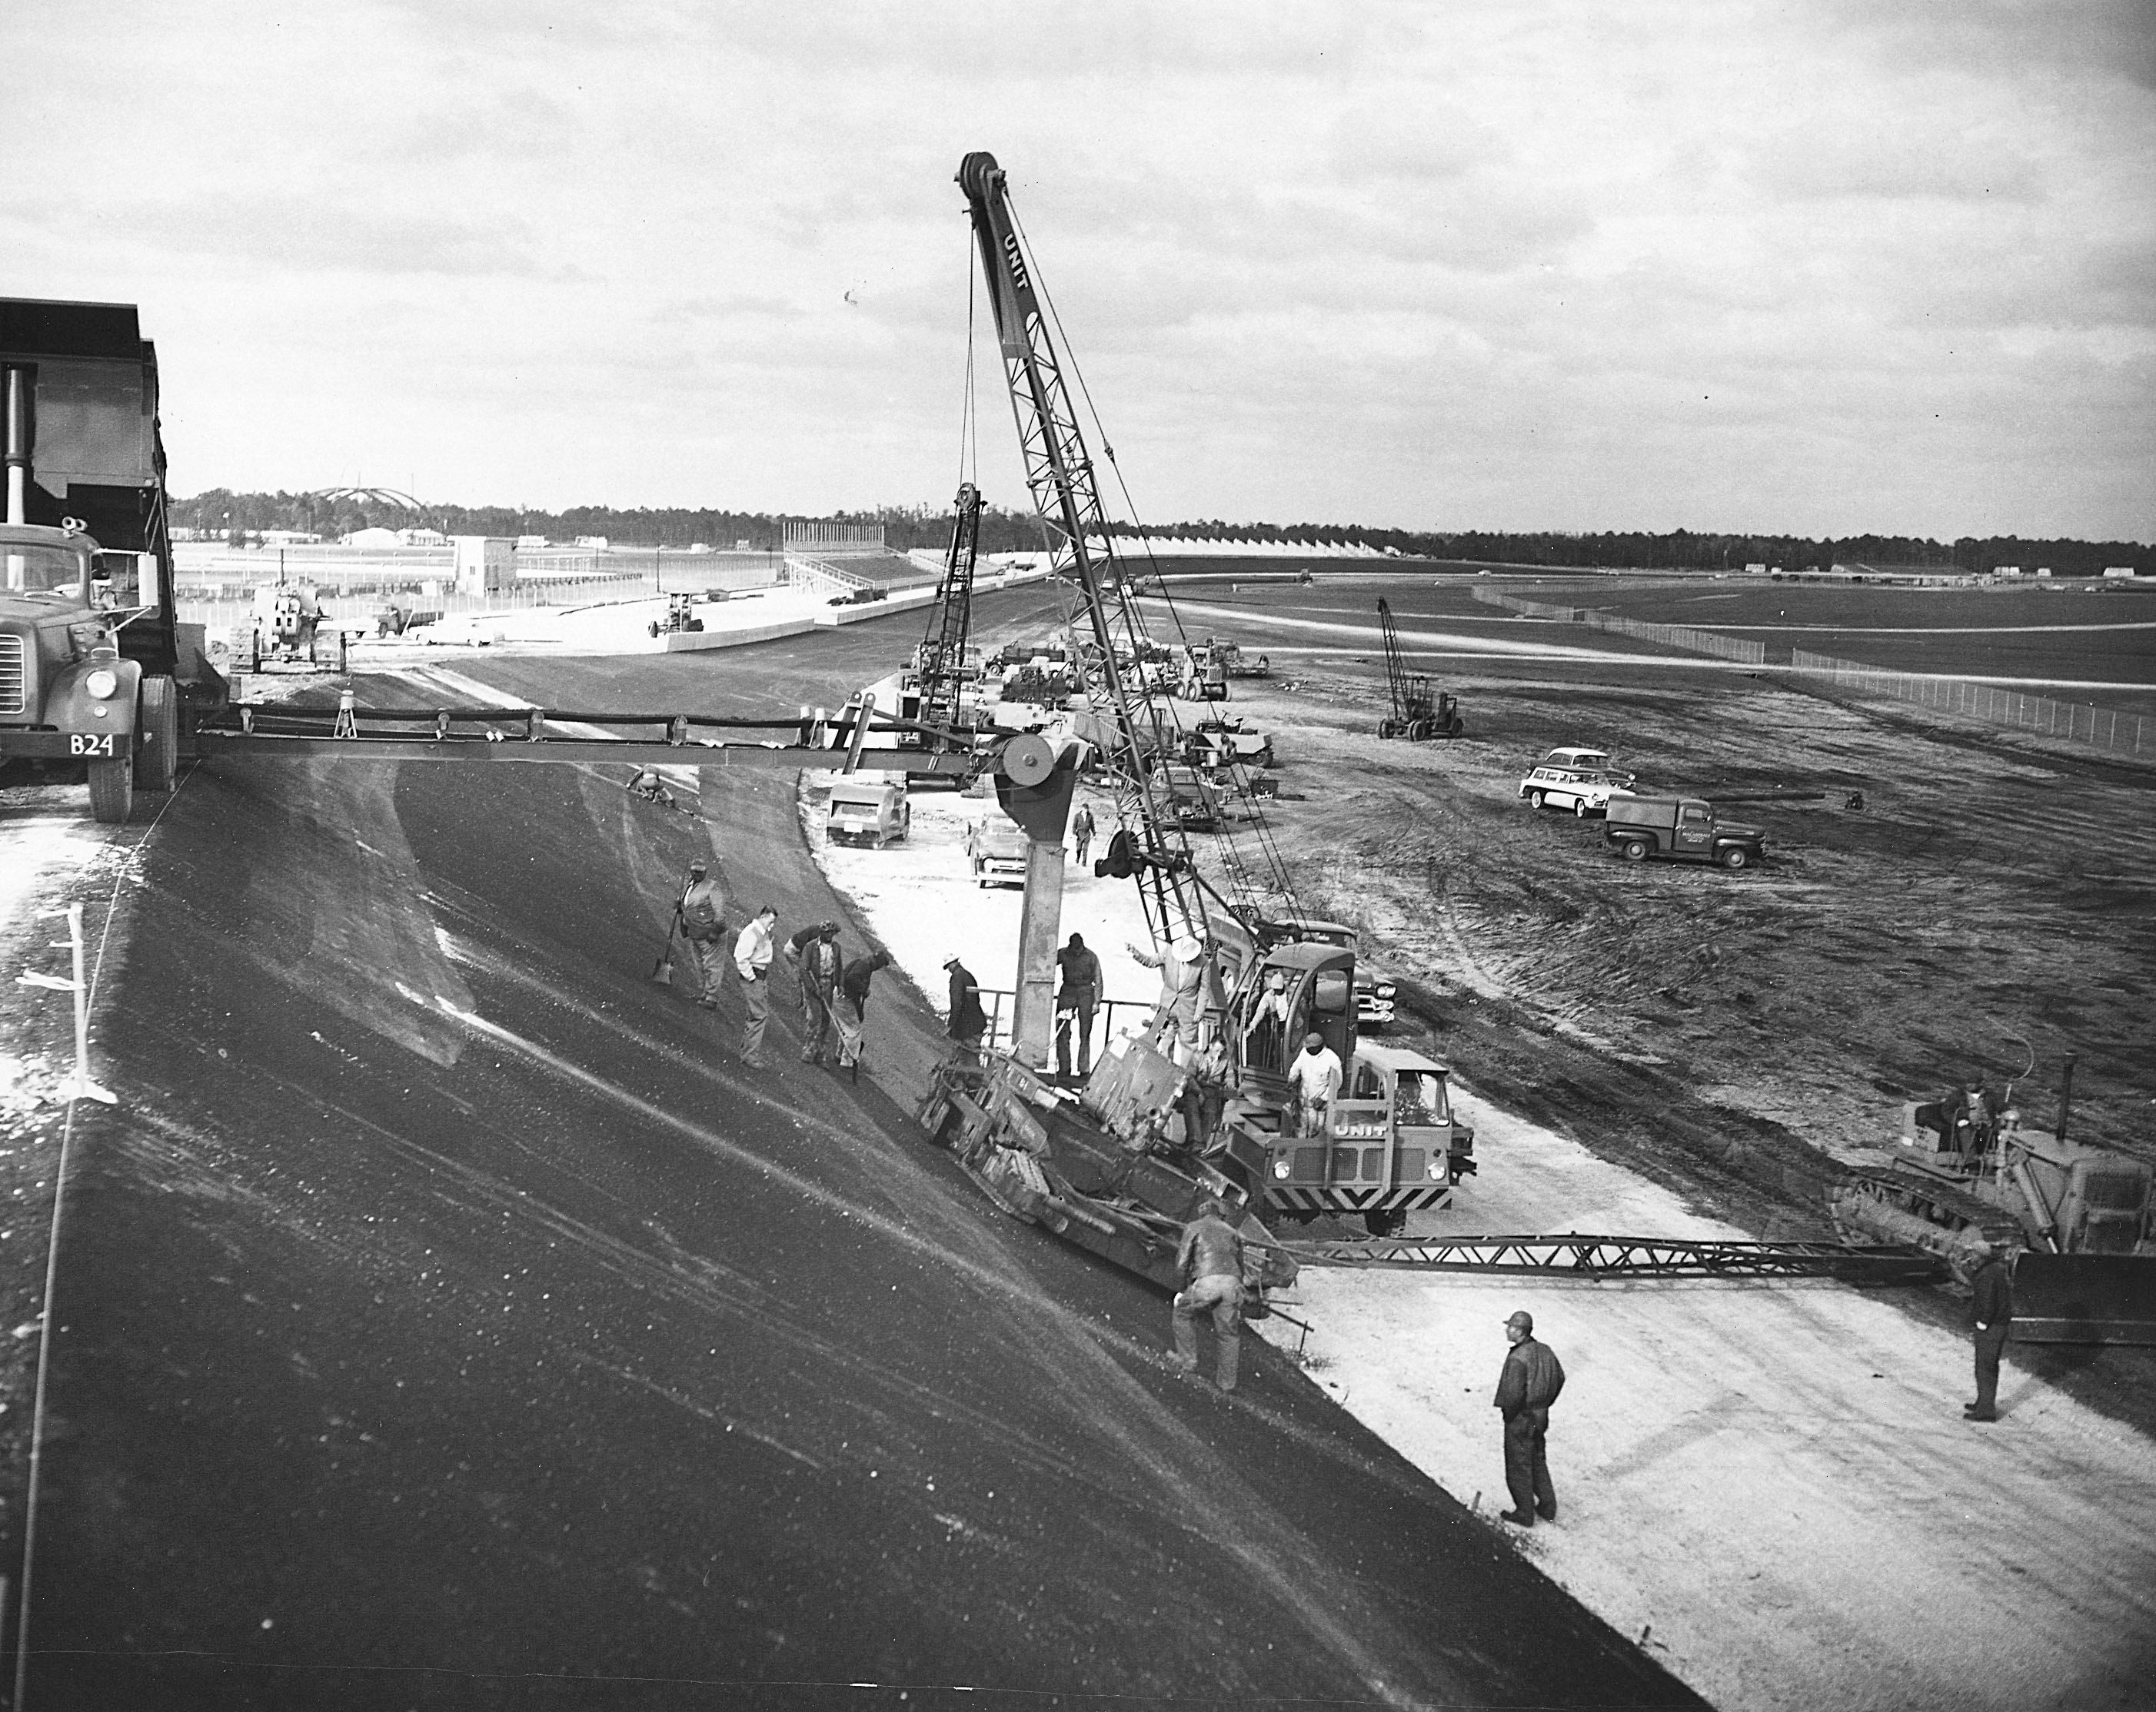 In 1958 Construction Of Daytona International Speedway Began Daytona International Speedway Talladega Superspeedway Talladega